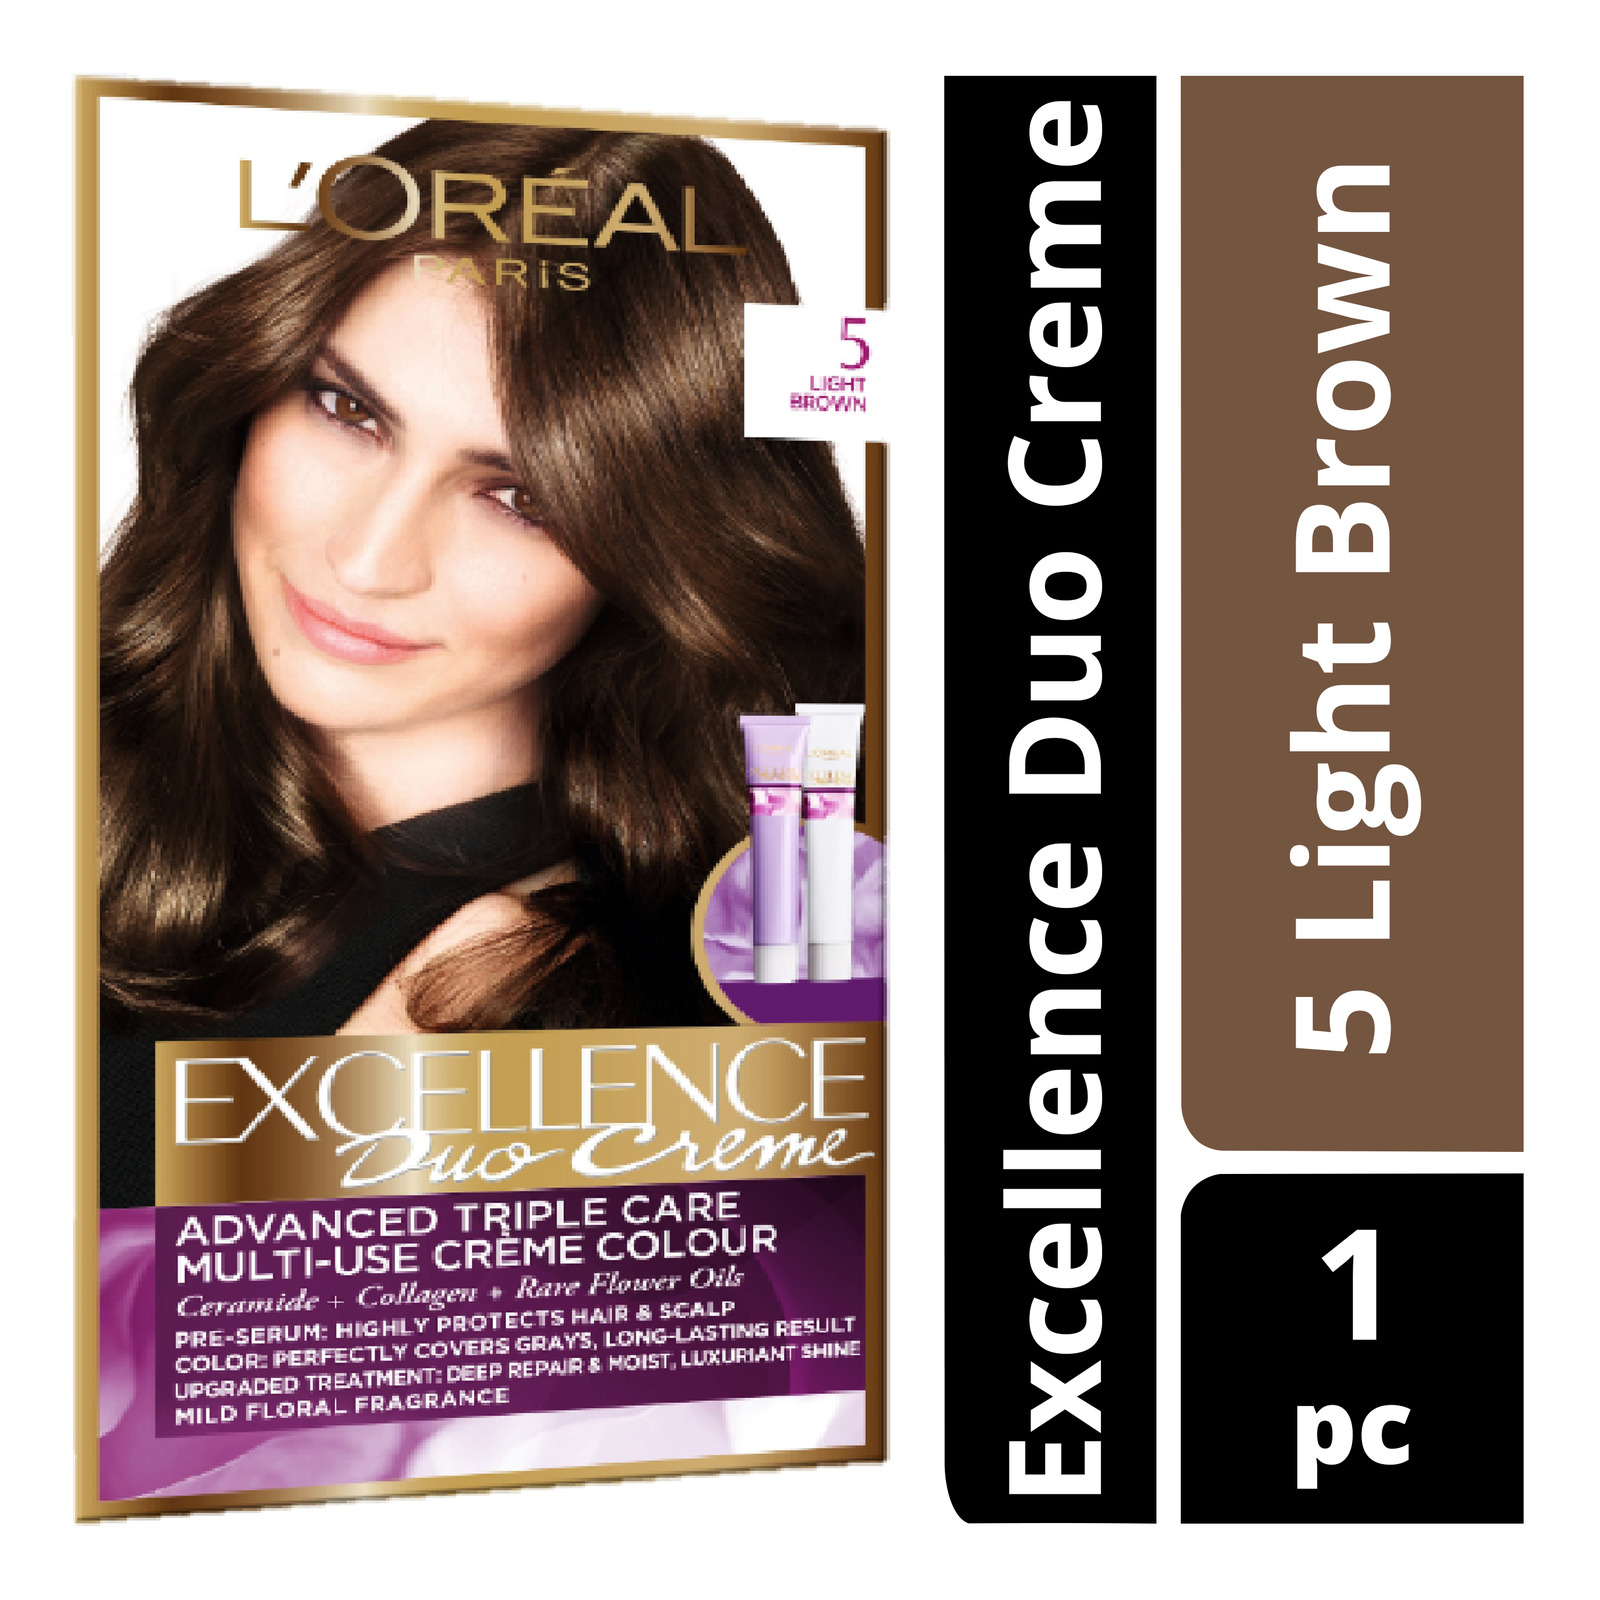 L'Oreal Paris Excellence Duo Creme Hair Dye - 5 Light Brown